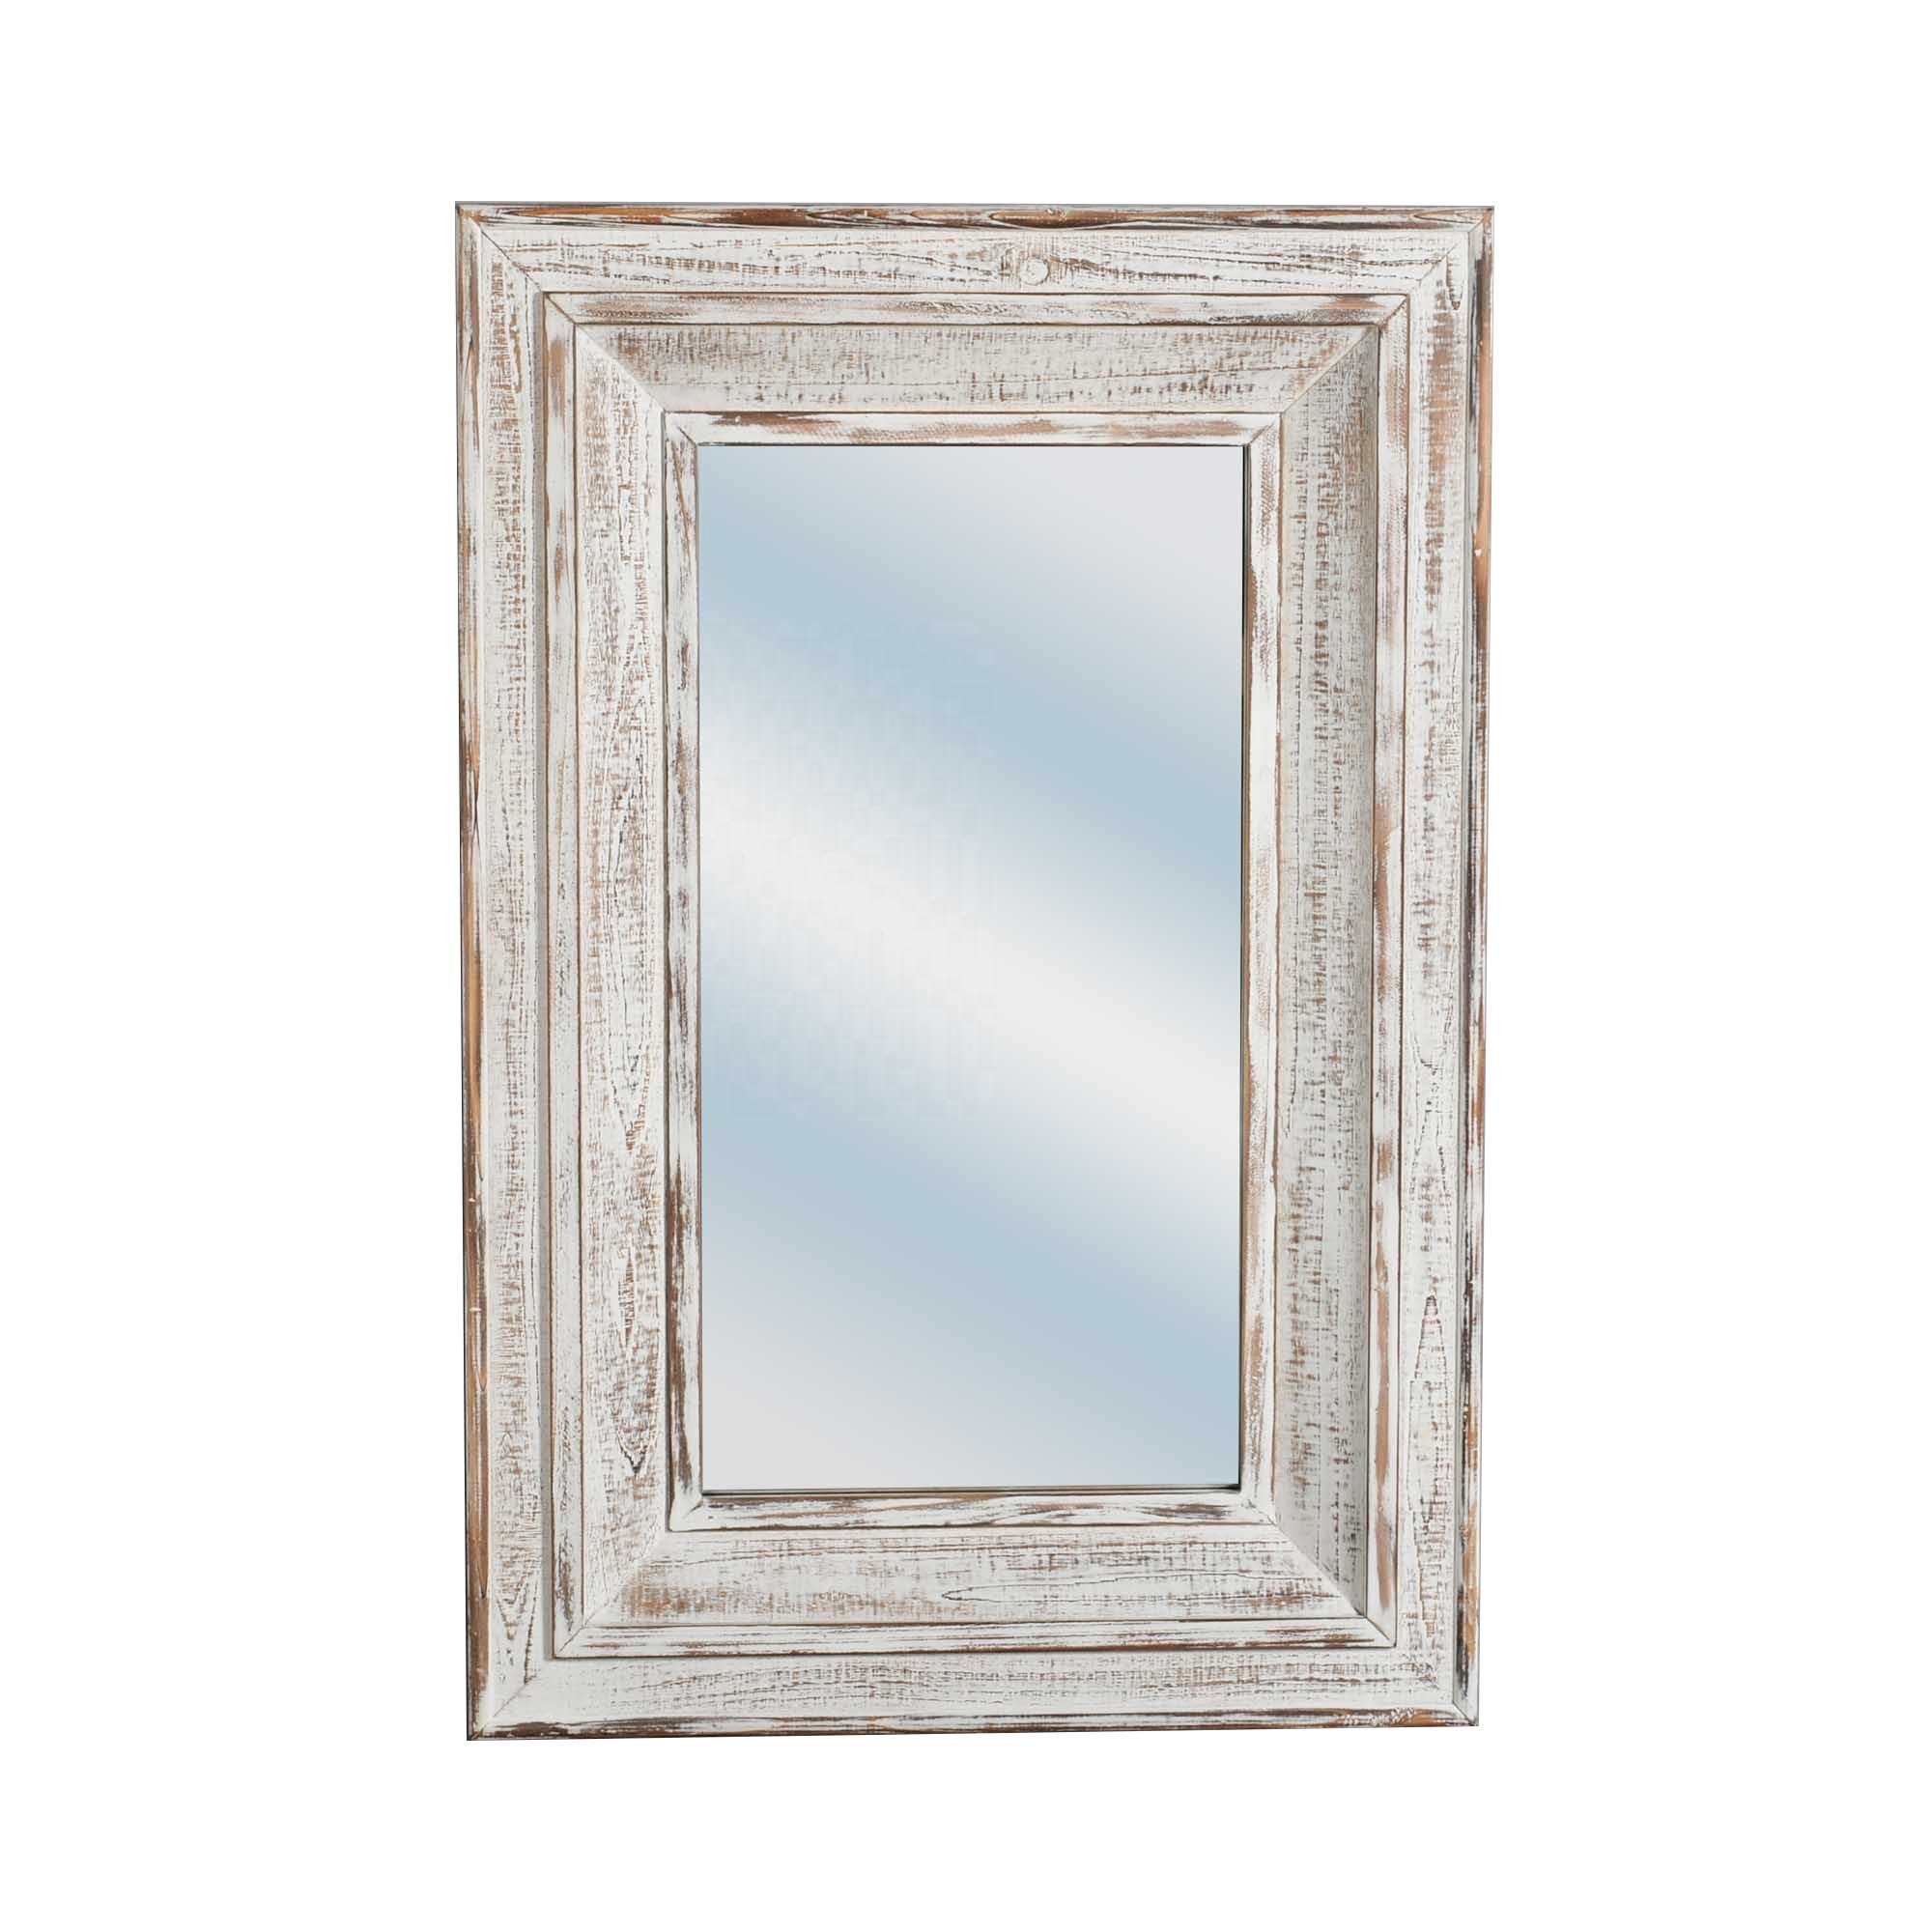 Mayco Wholesale Farmhouse Furniture Decor Antique White Wash Rustic Rectangular Wood Frame Wall Mirror